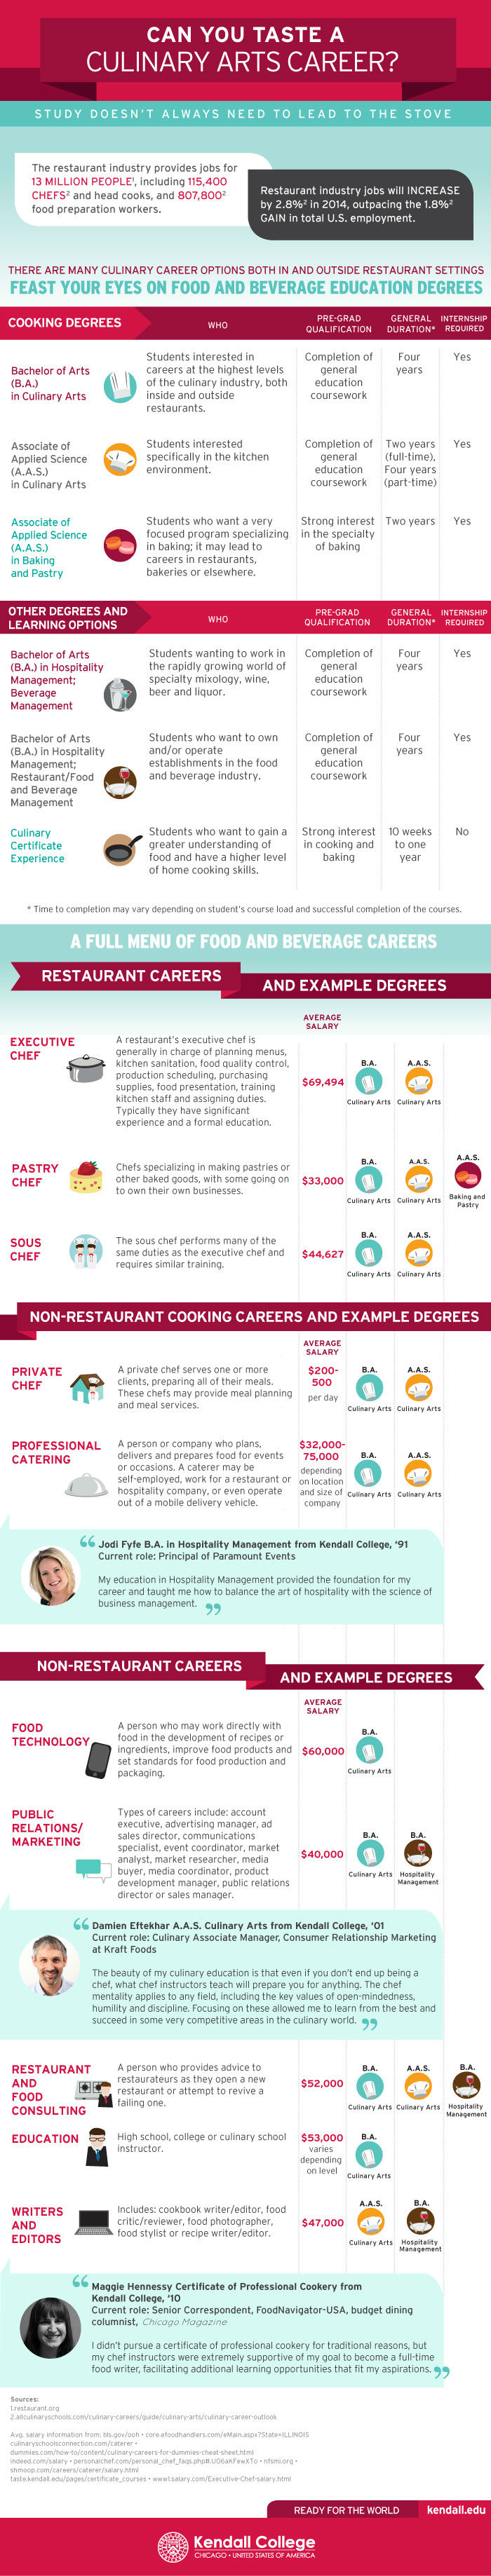 Can You Taste A Culinary Arts Career? [Infographic]